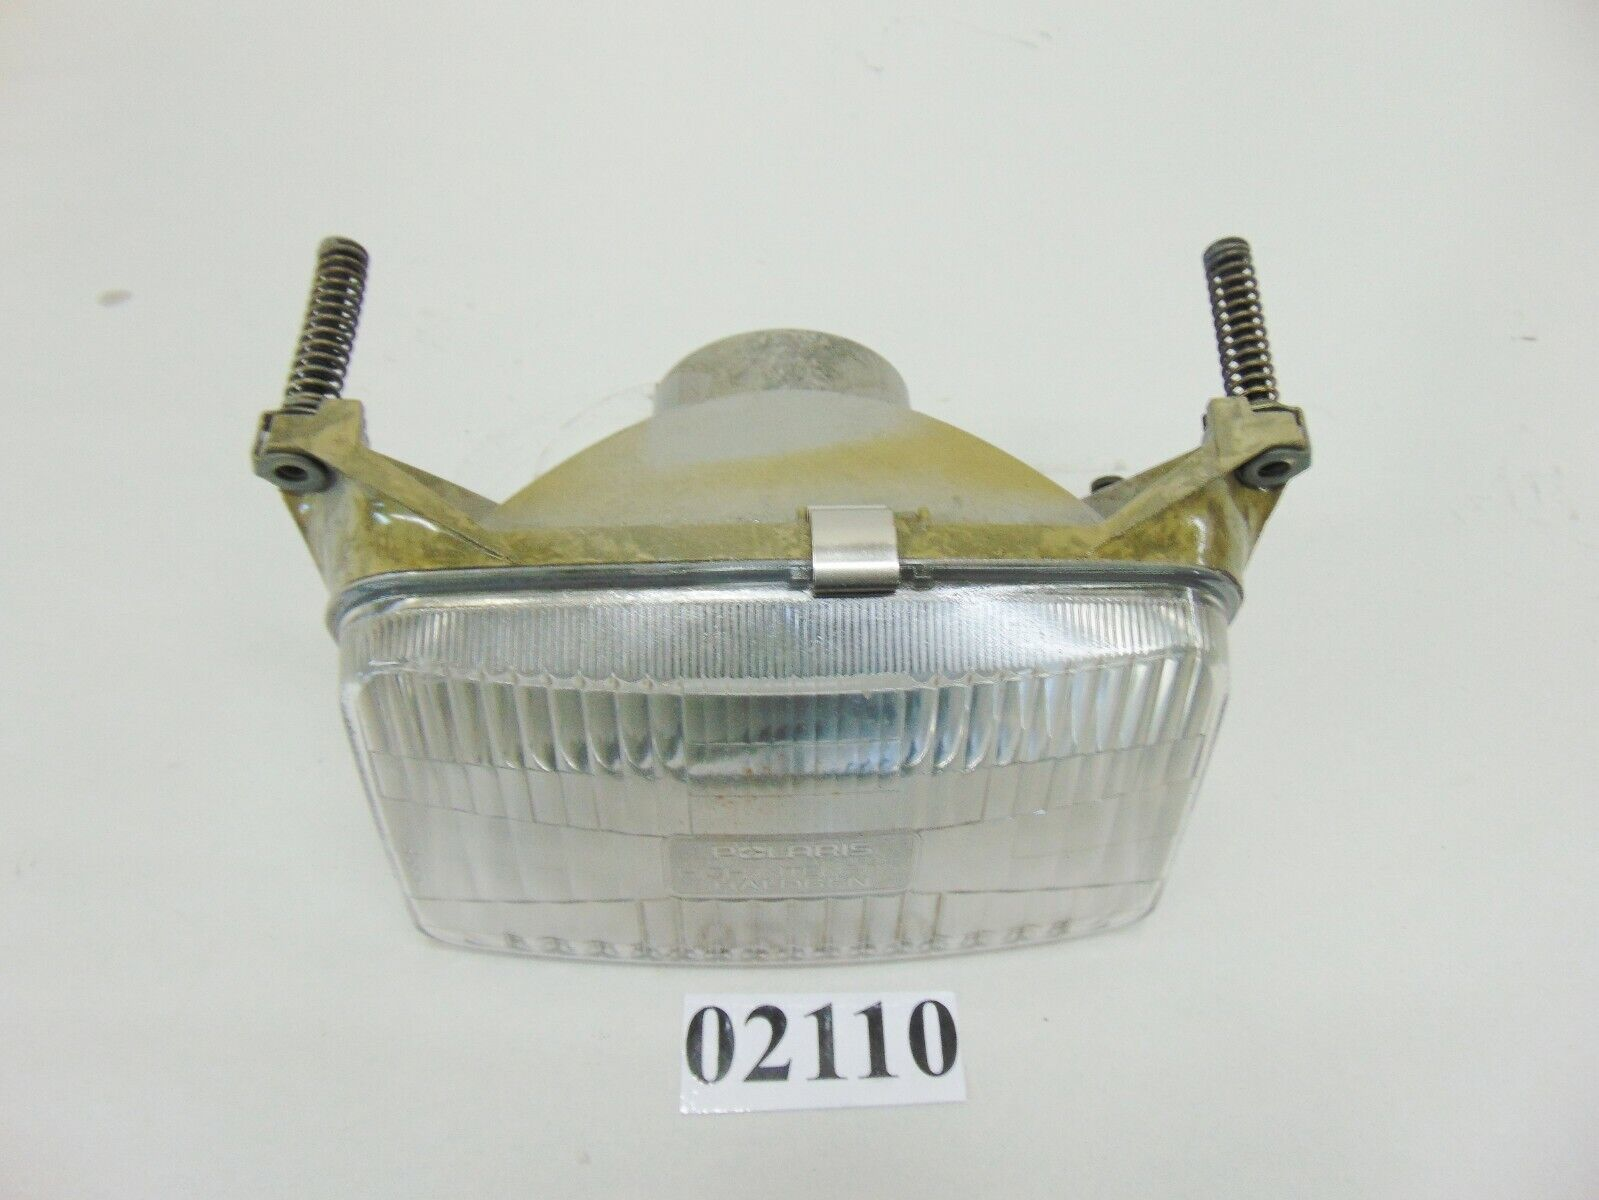 02110 Polaris Indy Storm 750 OEM Headlight 1993 93 AJ